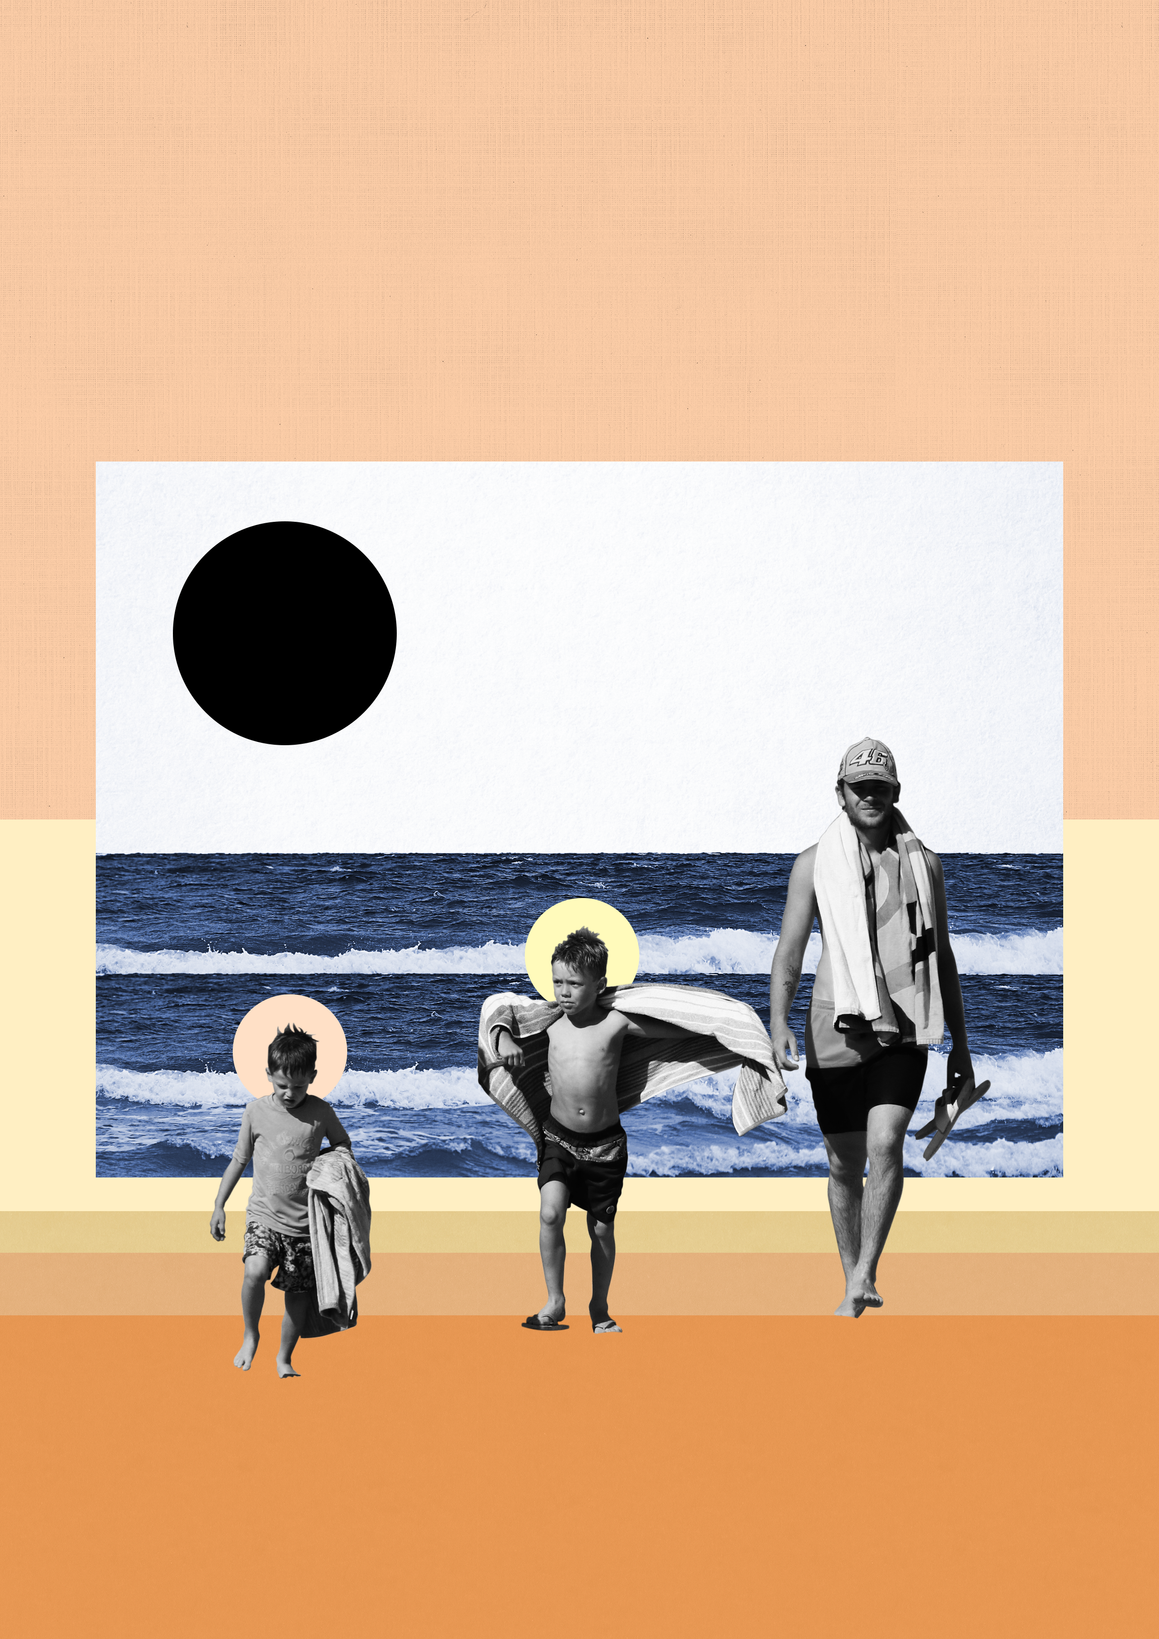 Family_beach_A4.png